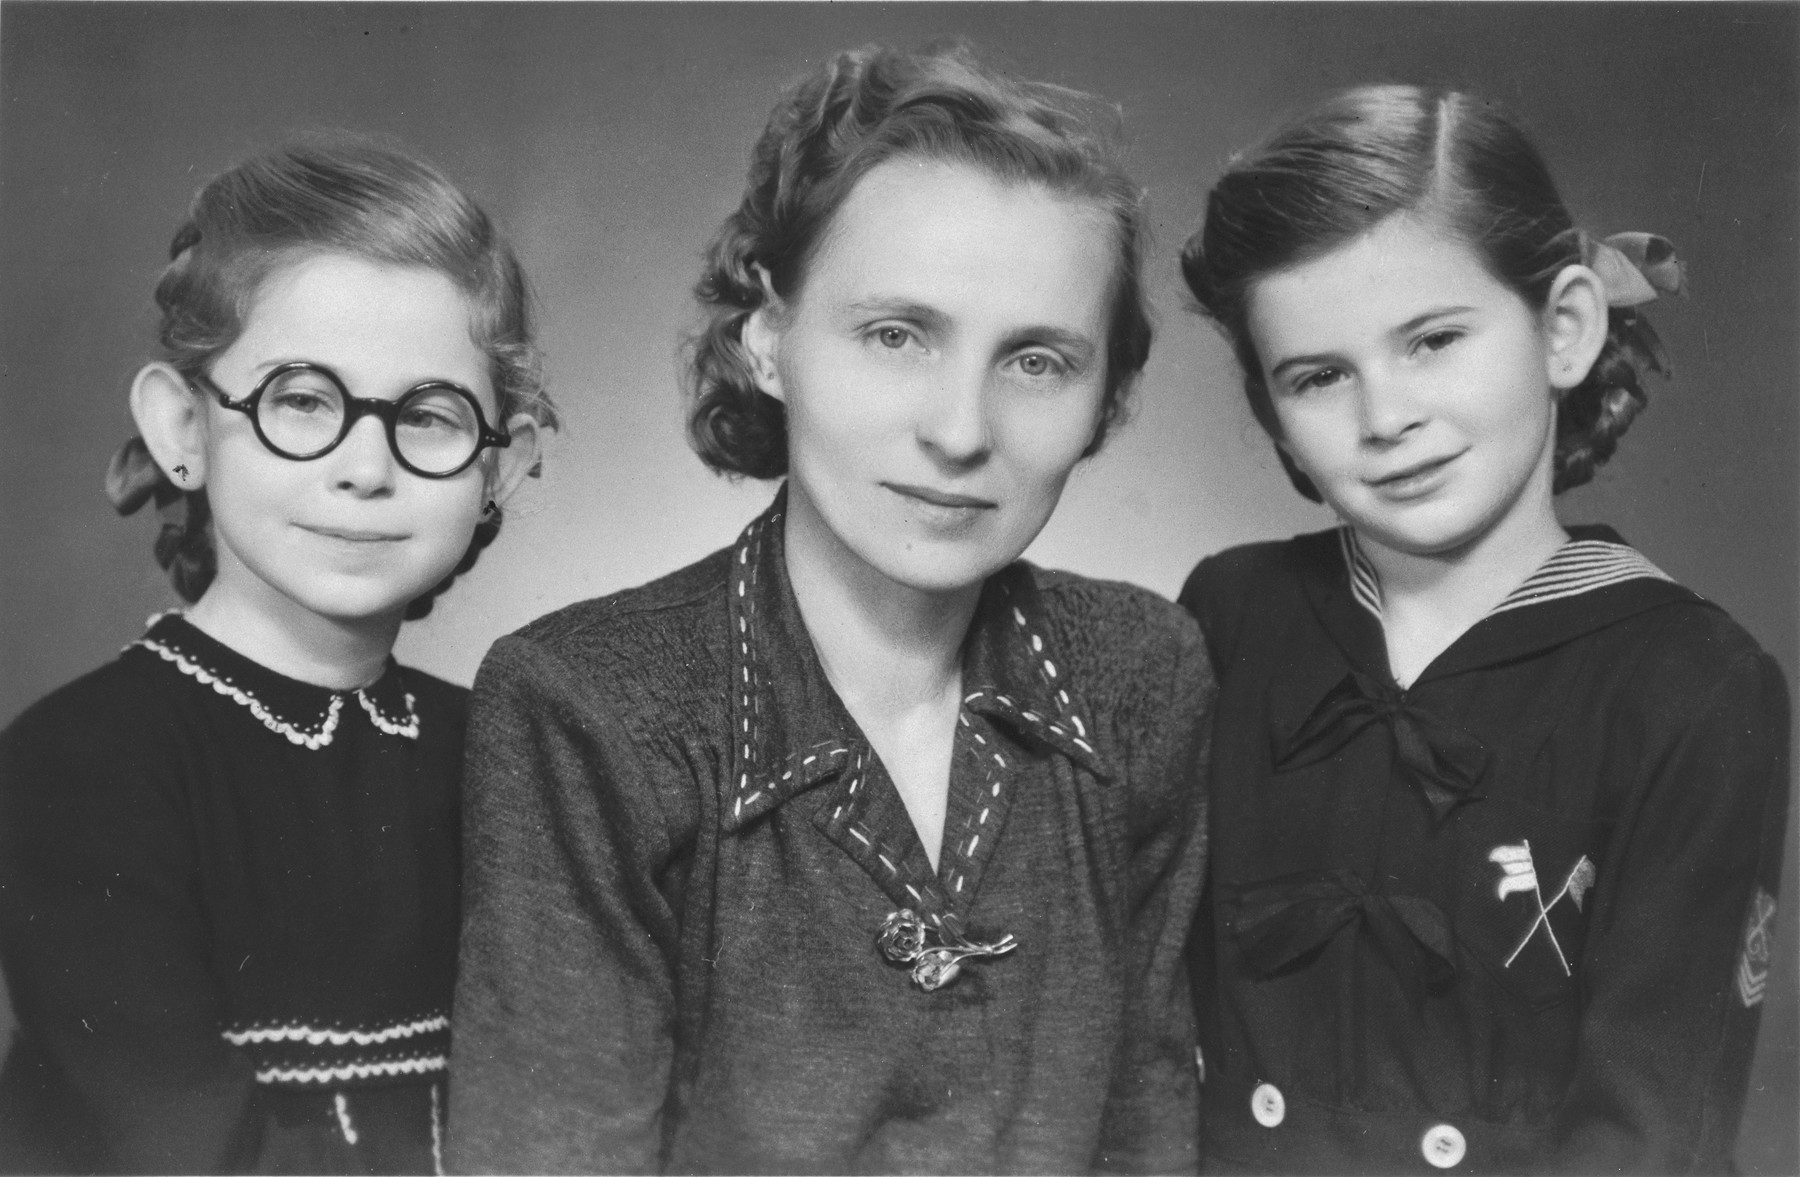 Studio portrait of two Jewish sisters with their rescuer after the war.  Pictured are Renate (right) and Sylvia Schonberg (left) with their nanny and rescuer, Frantiska Prva.